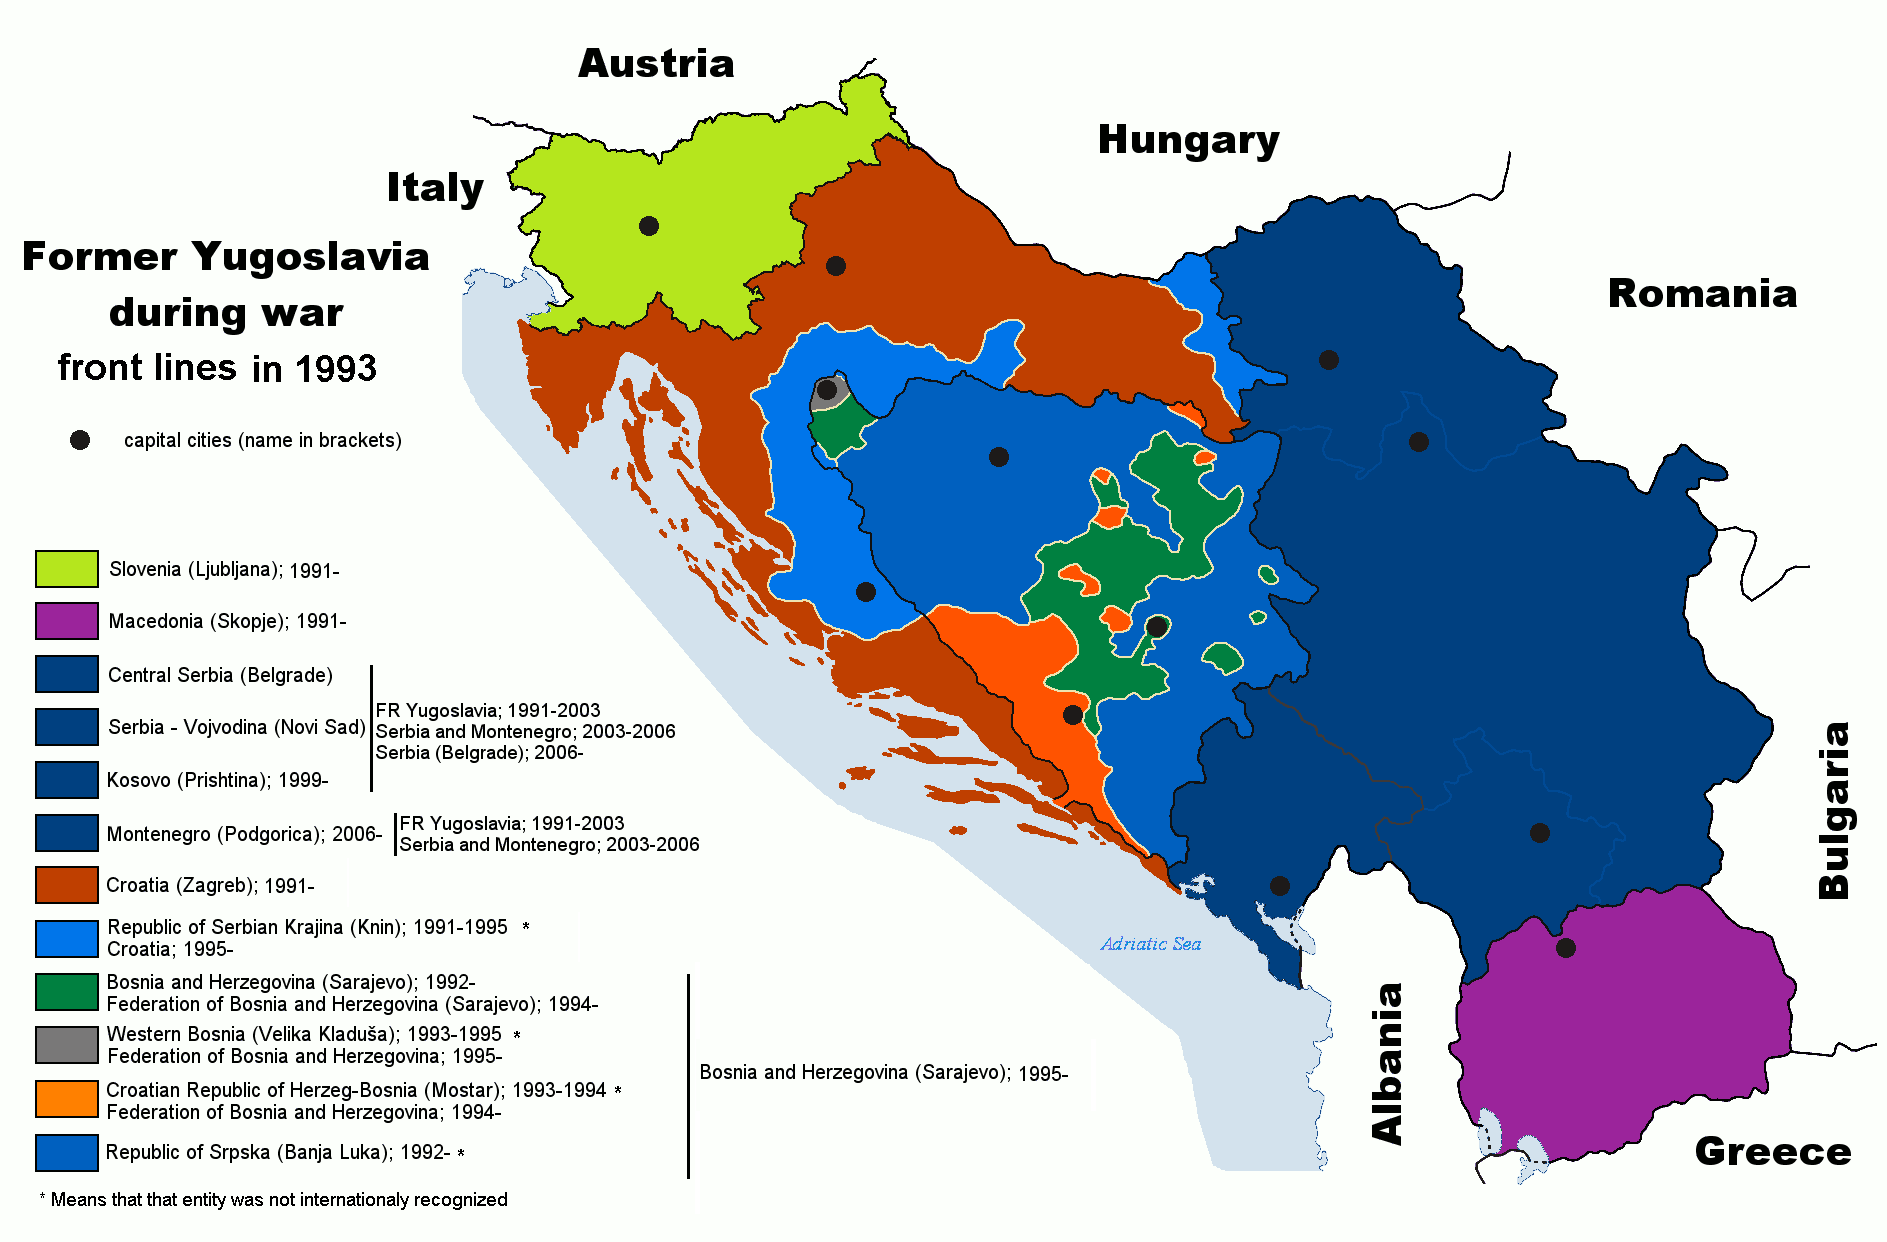 Map of former Yugoslavia during last wars.